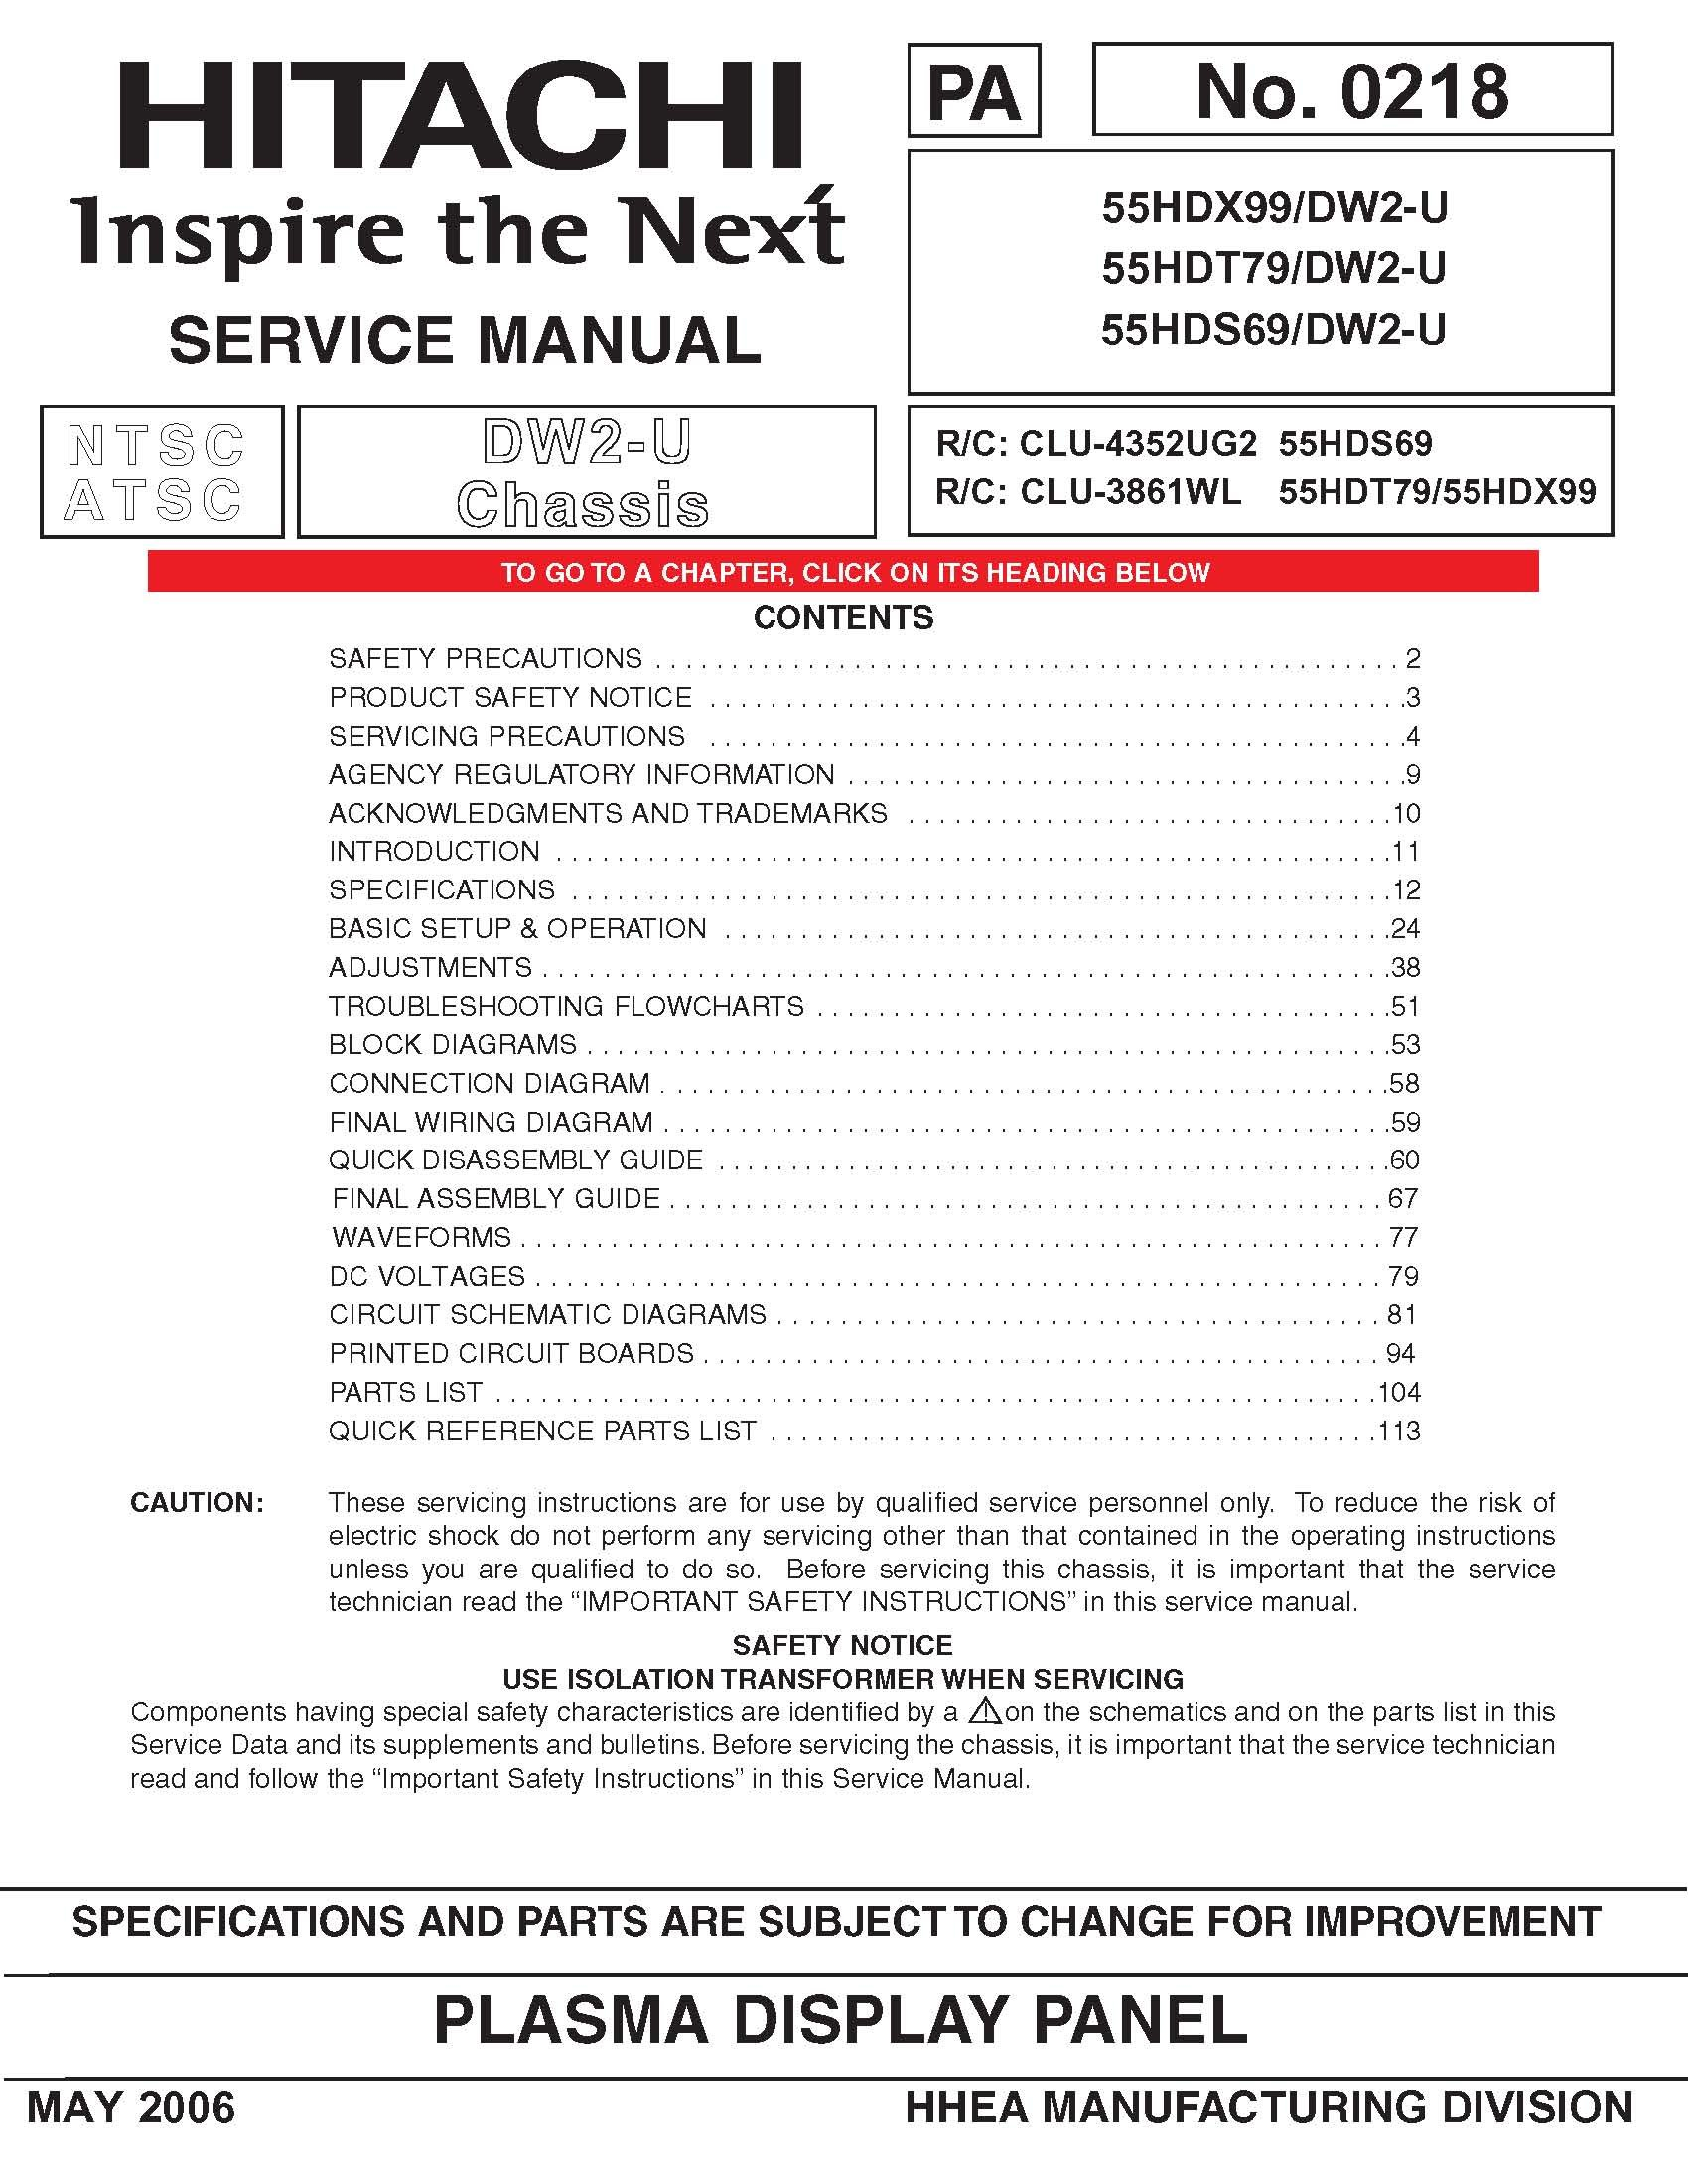 hitachi 55hdt79 service manual hitachi amazon com books rh amazon com Hitachi Repair Manual Hitachi TV Repair Manual